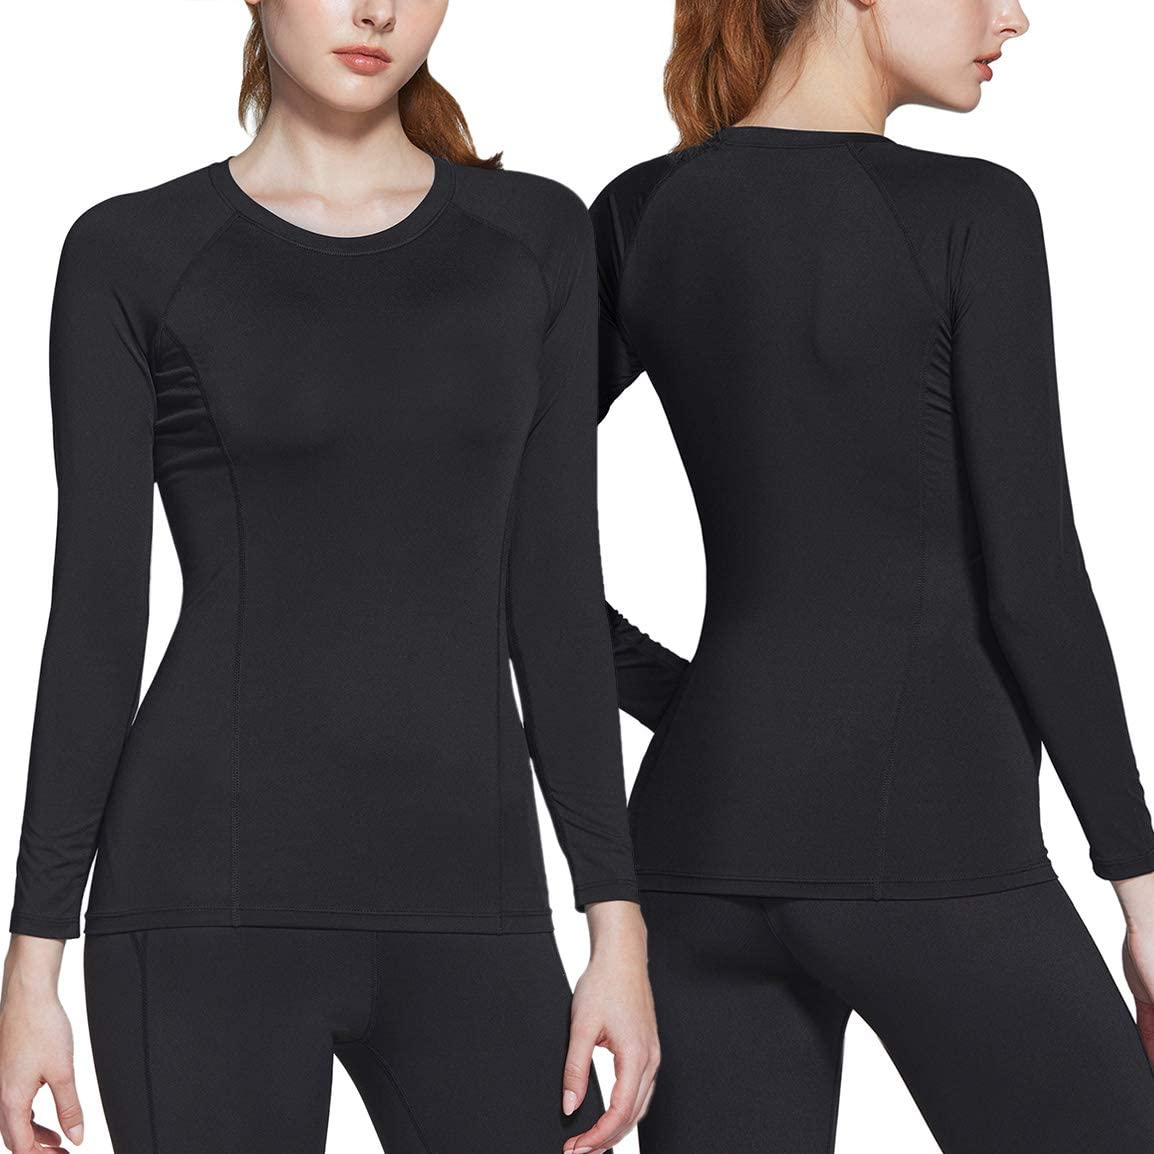 Cool Dry Fit Long Sleeve Workout Tops Athletic Exercise Gym Yoga Shirts ATHLIO 2 Pack Womens Sports Compression Shirt